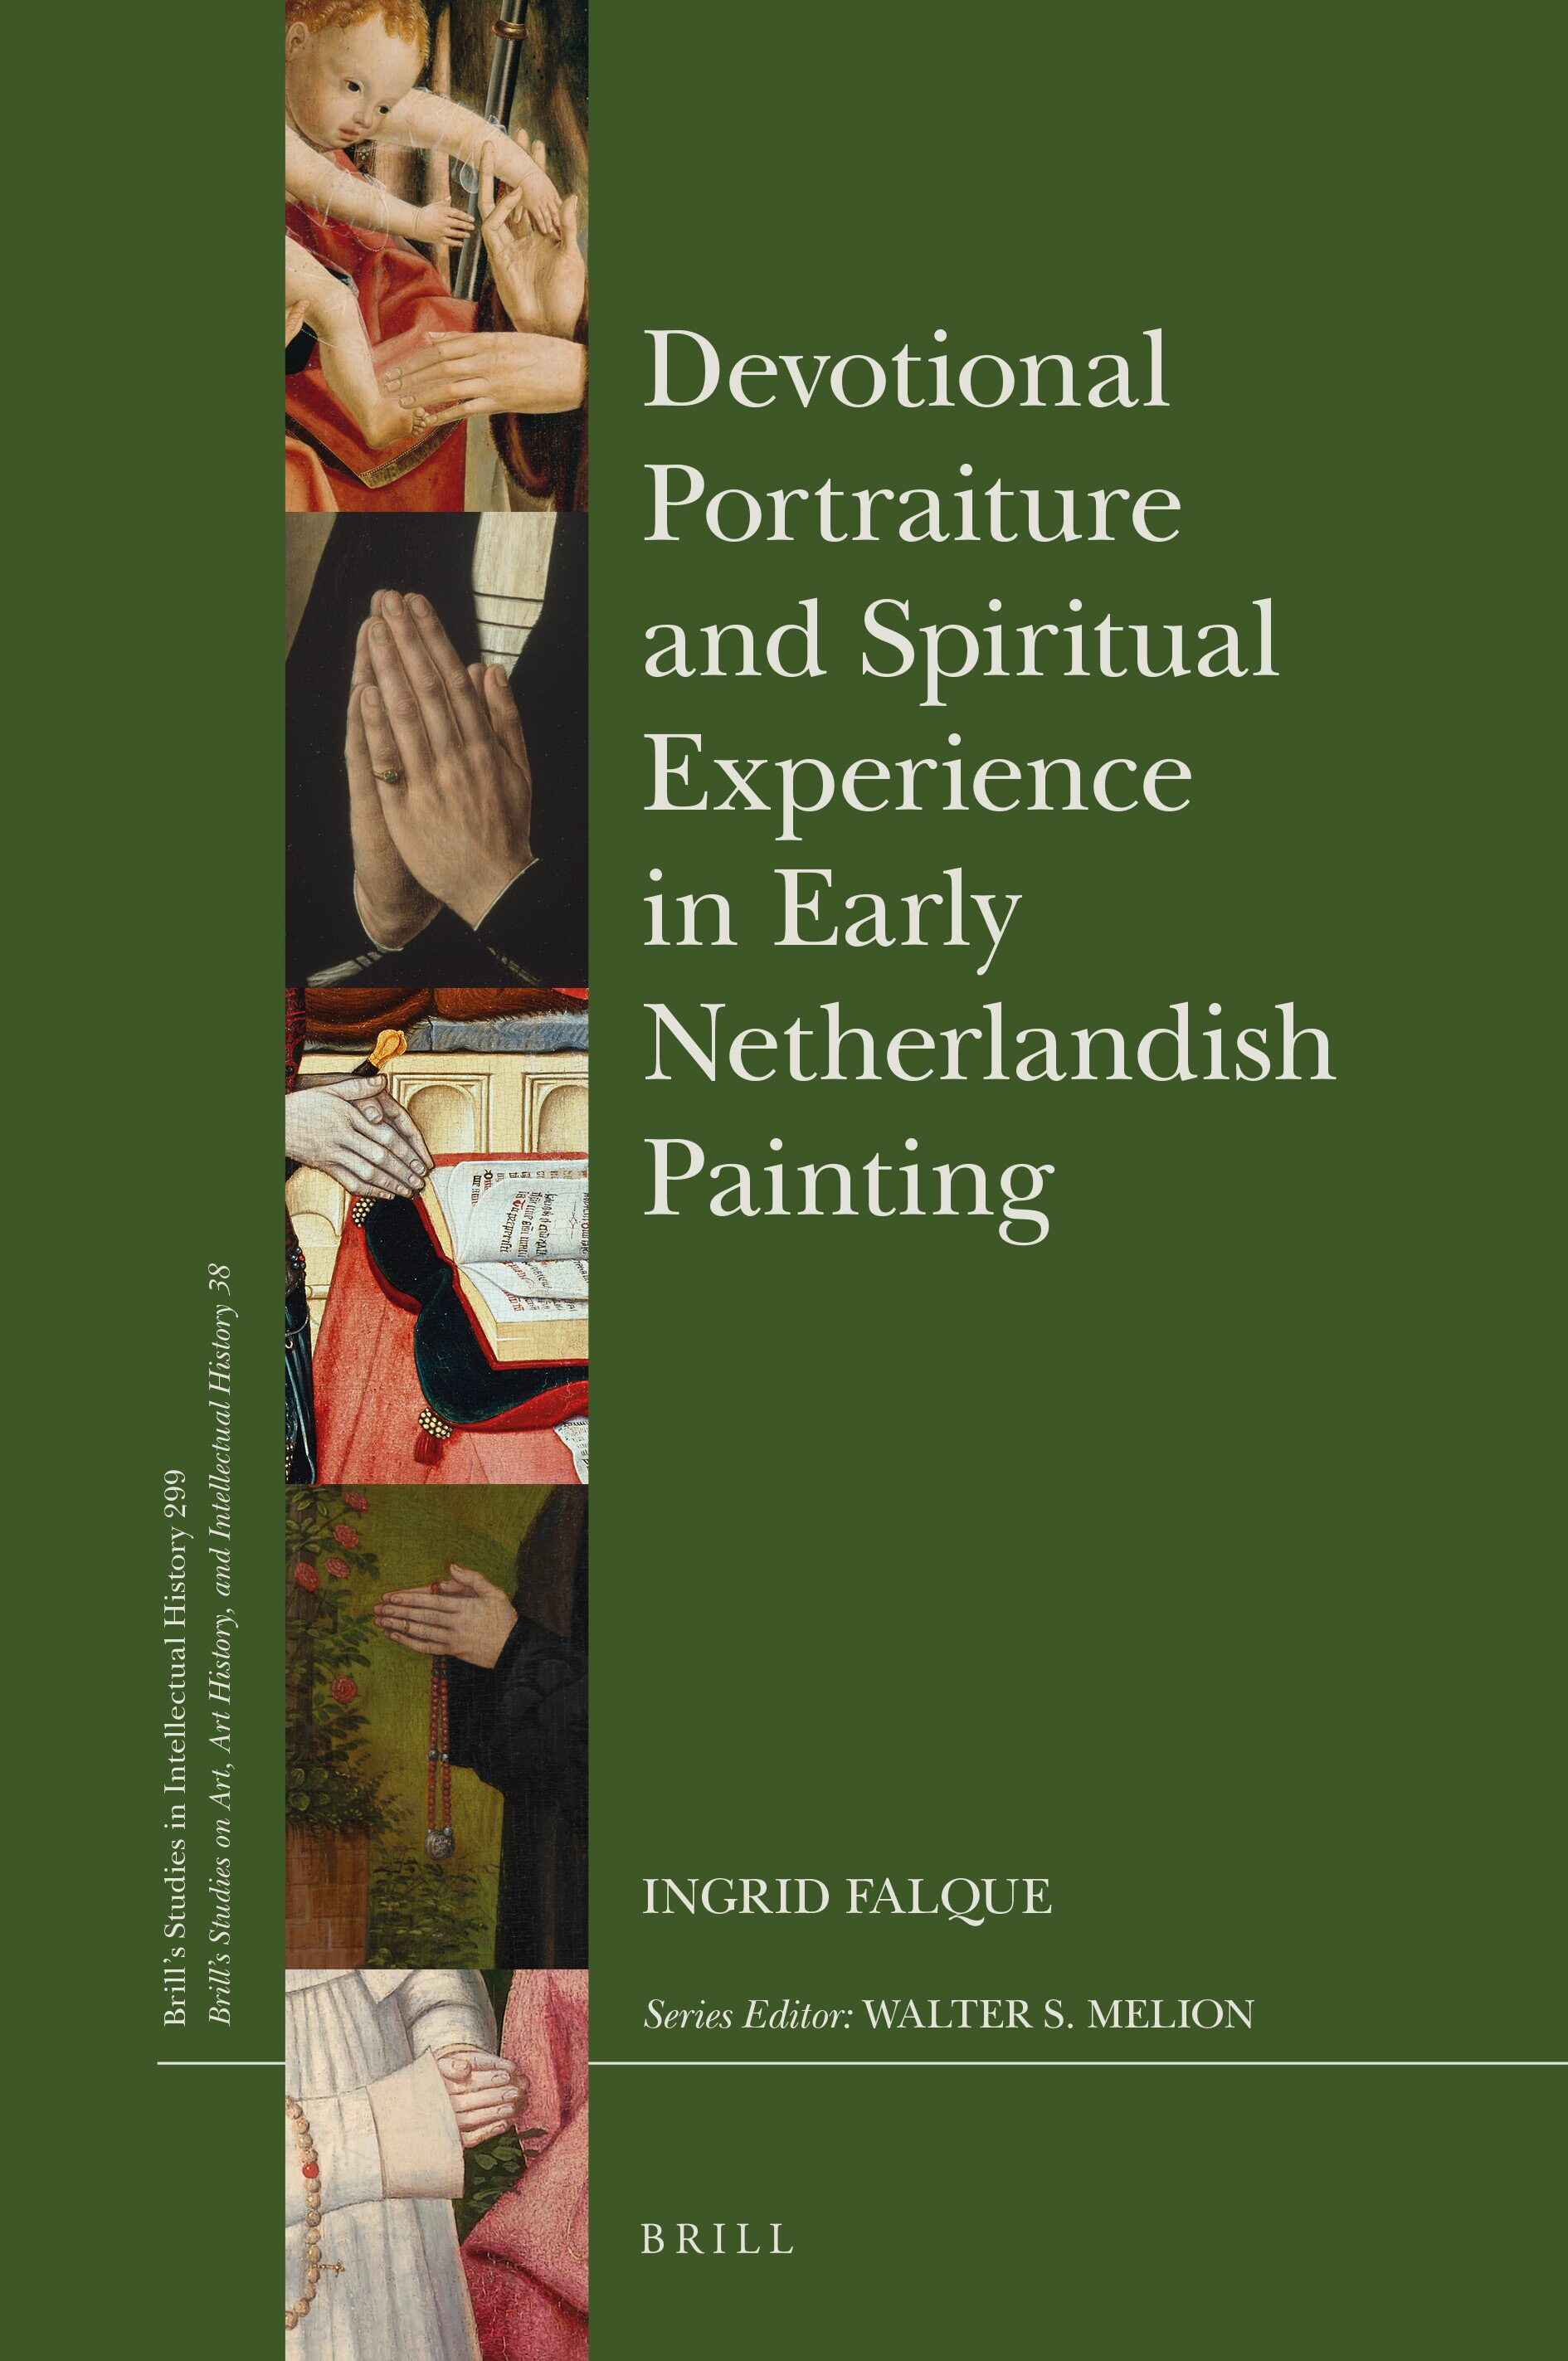 Welp Bibliography in: Devotional Portraiture and Spiritual Experience CE-22